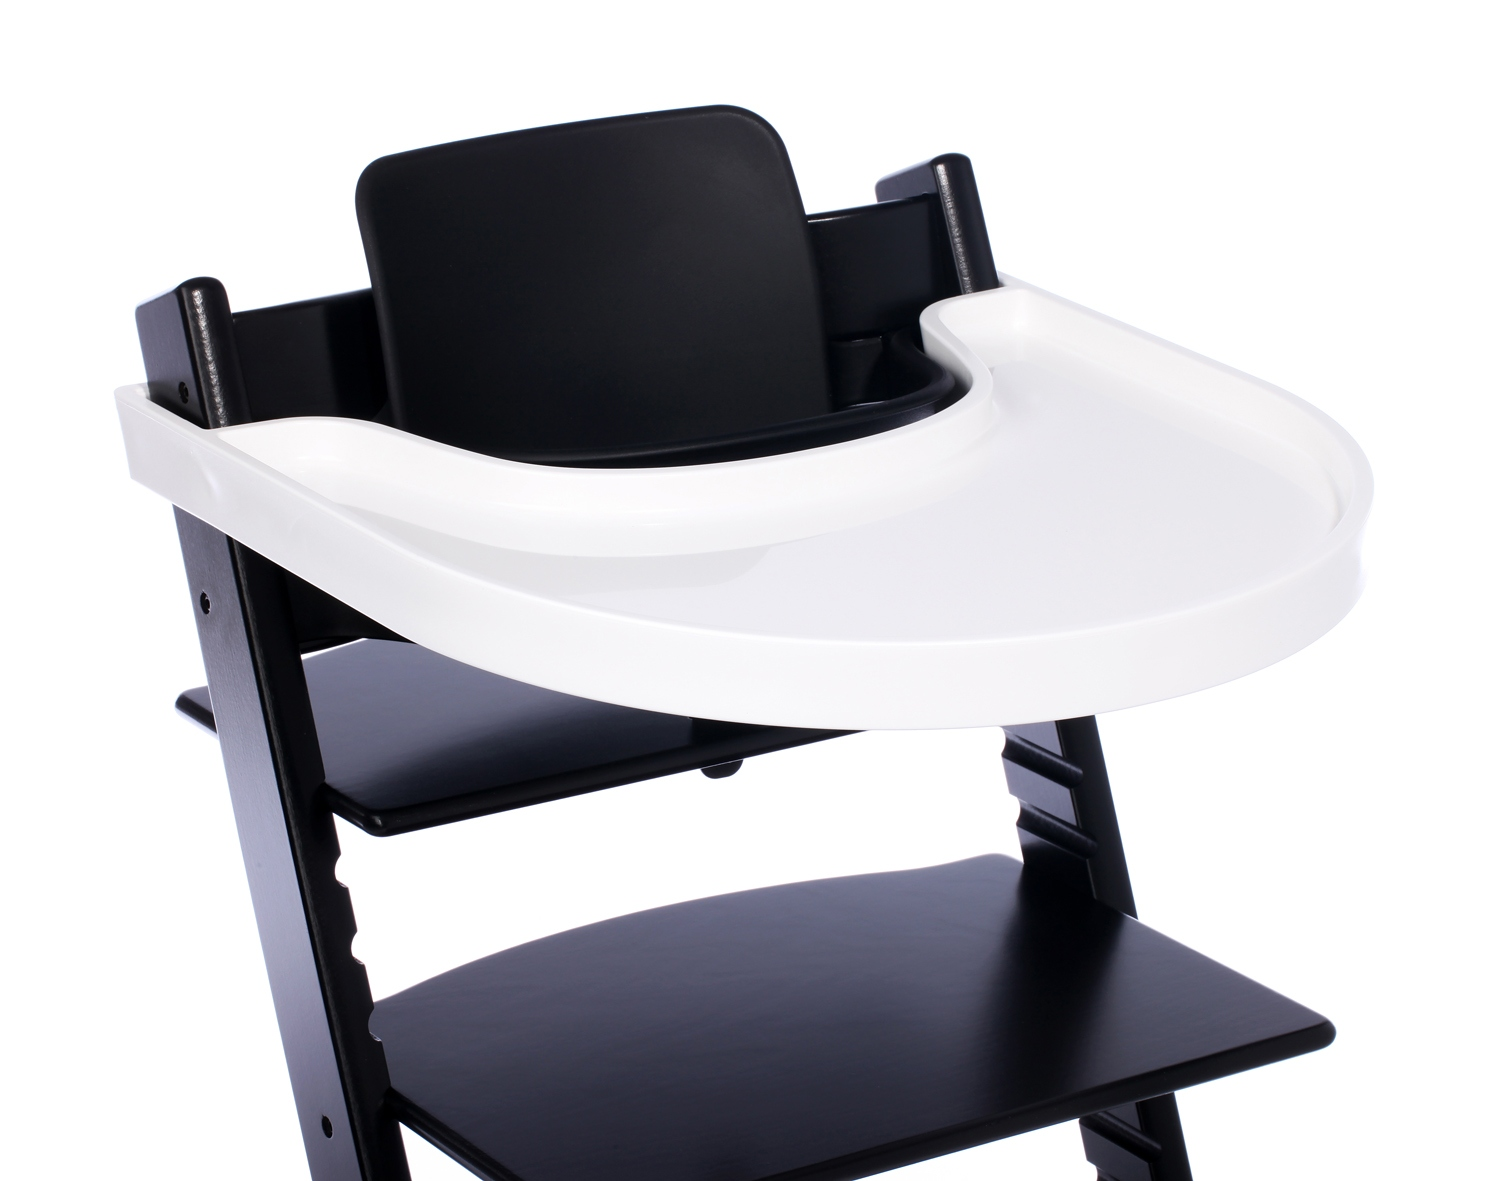 PLAYTRAY FOR STOKKE TRIPP TRAPP HIGH CHAIR IN WHITE